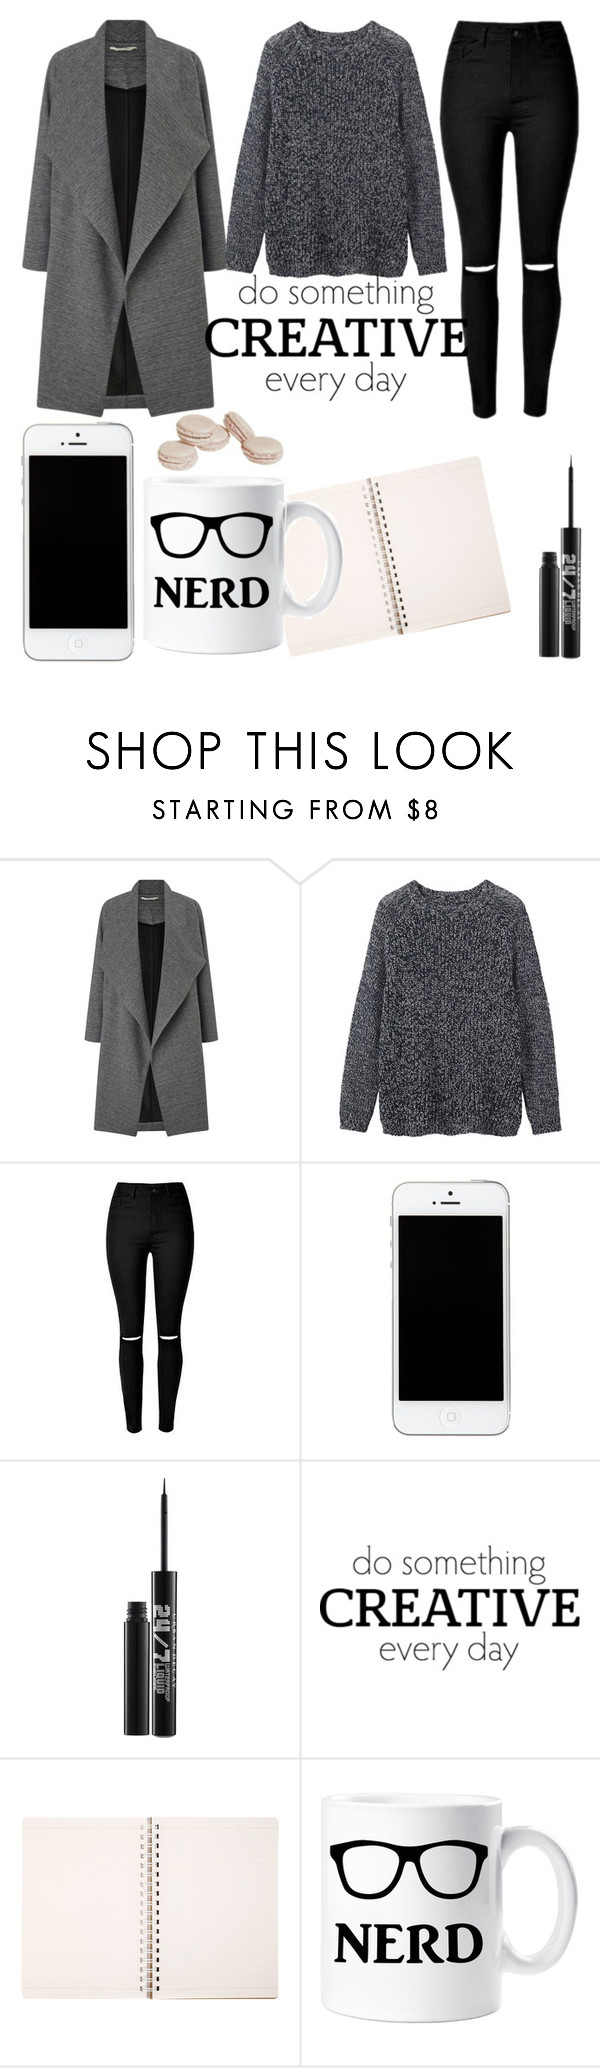 """#black#cute#"" by nastya-perfect ❤ liked on Polyvore featuring Miss Selfridge, Toast and Urban Decay"